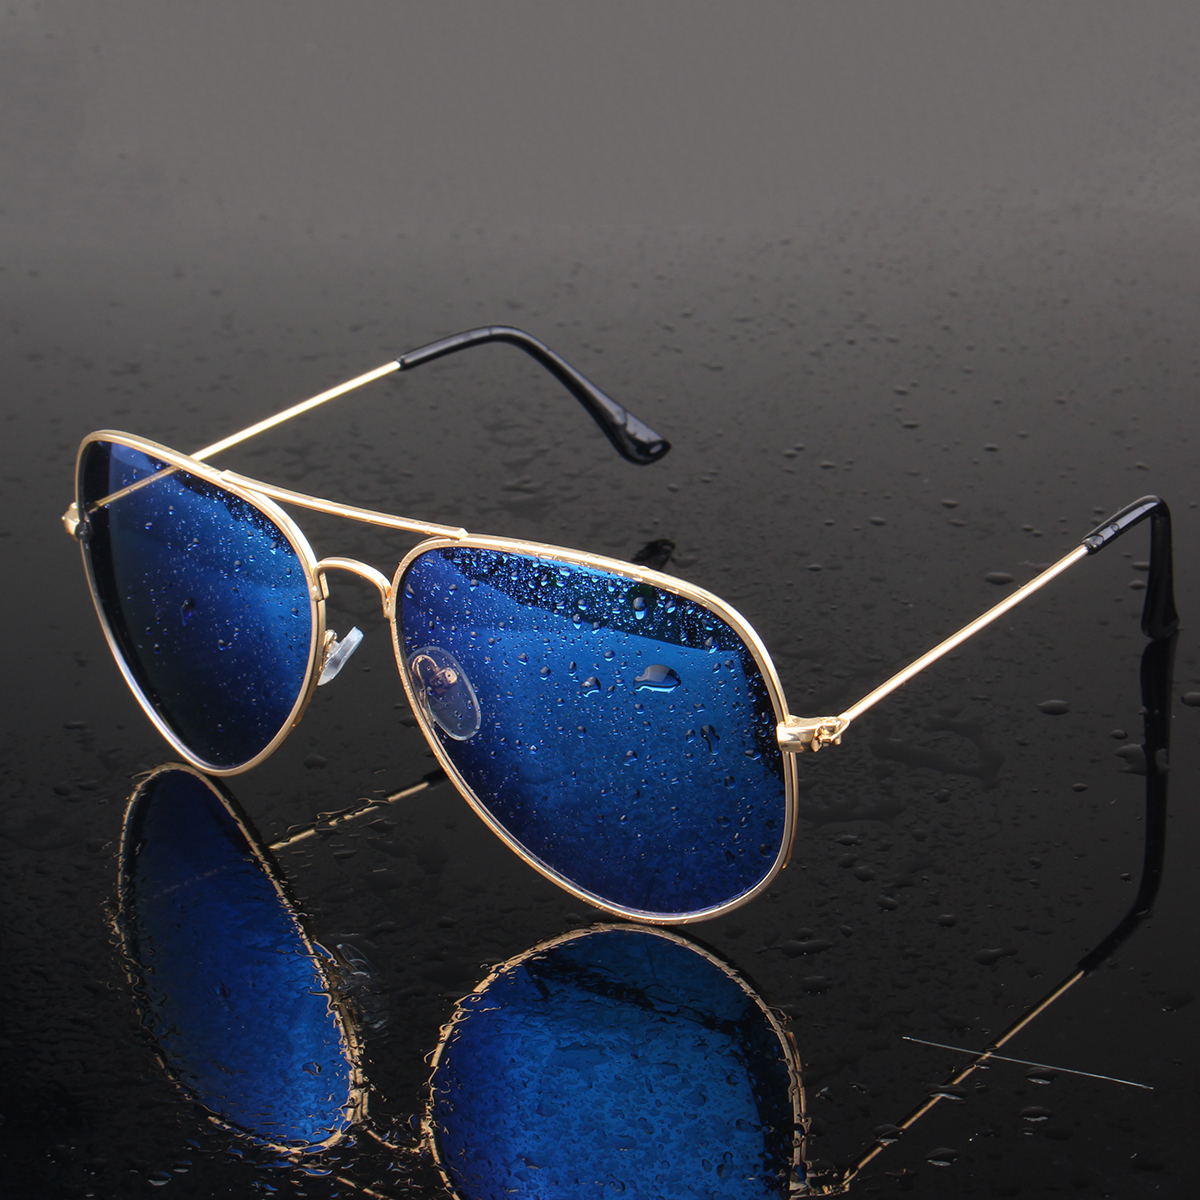 Men Retro Sunglasses Sports Polarized Fishing Golf Blue Lens Glasses